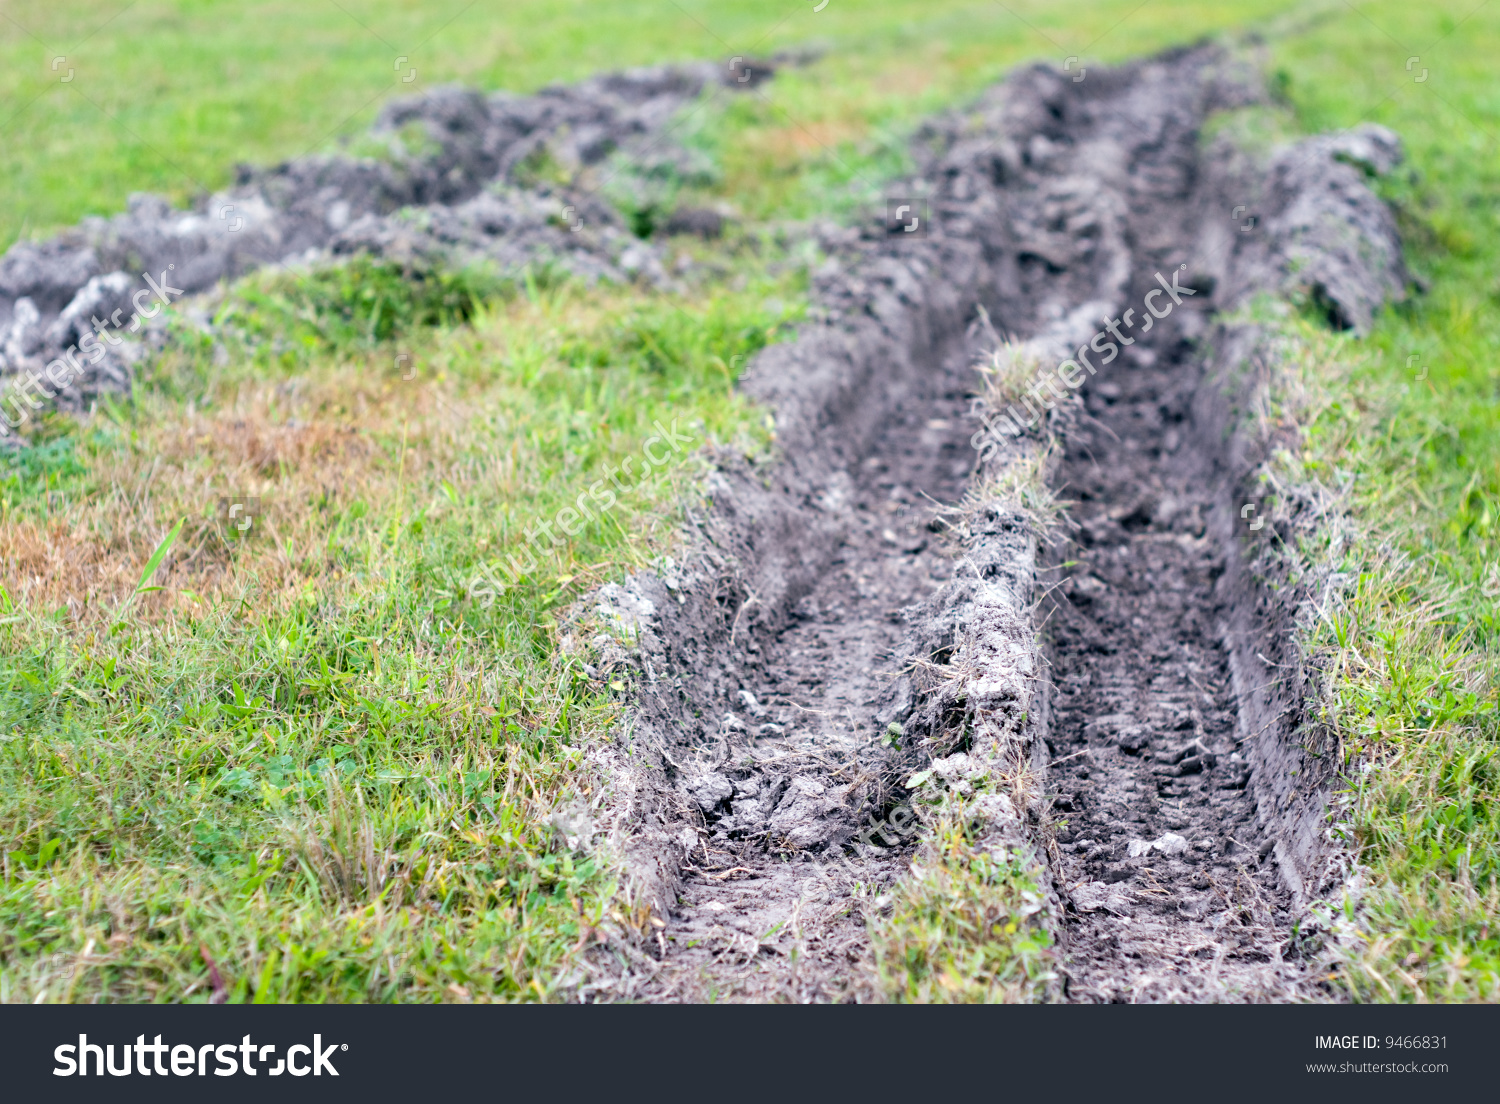 Muddy Field clipart #9, Download drawings